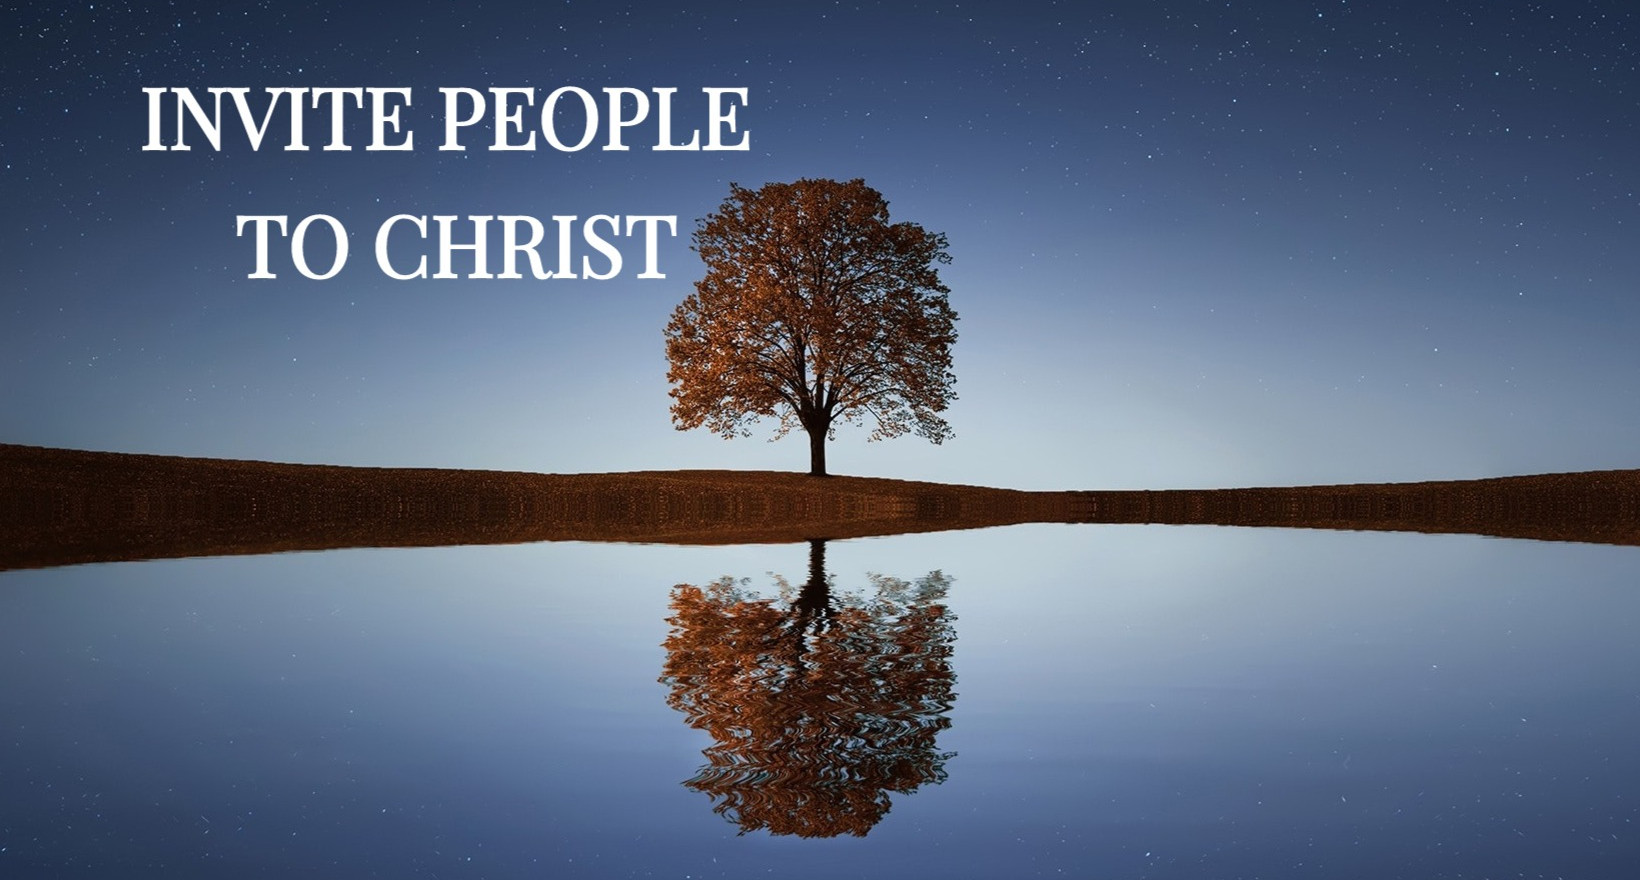 INVITE PEOPLE TO CHRIST